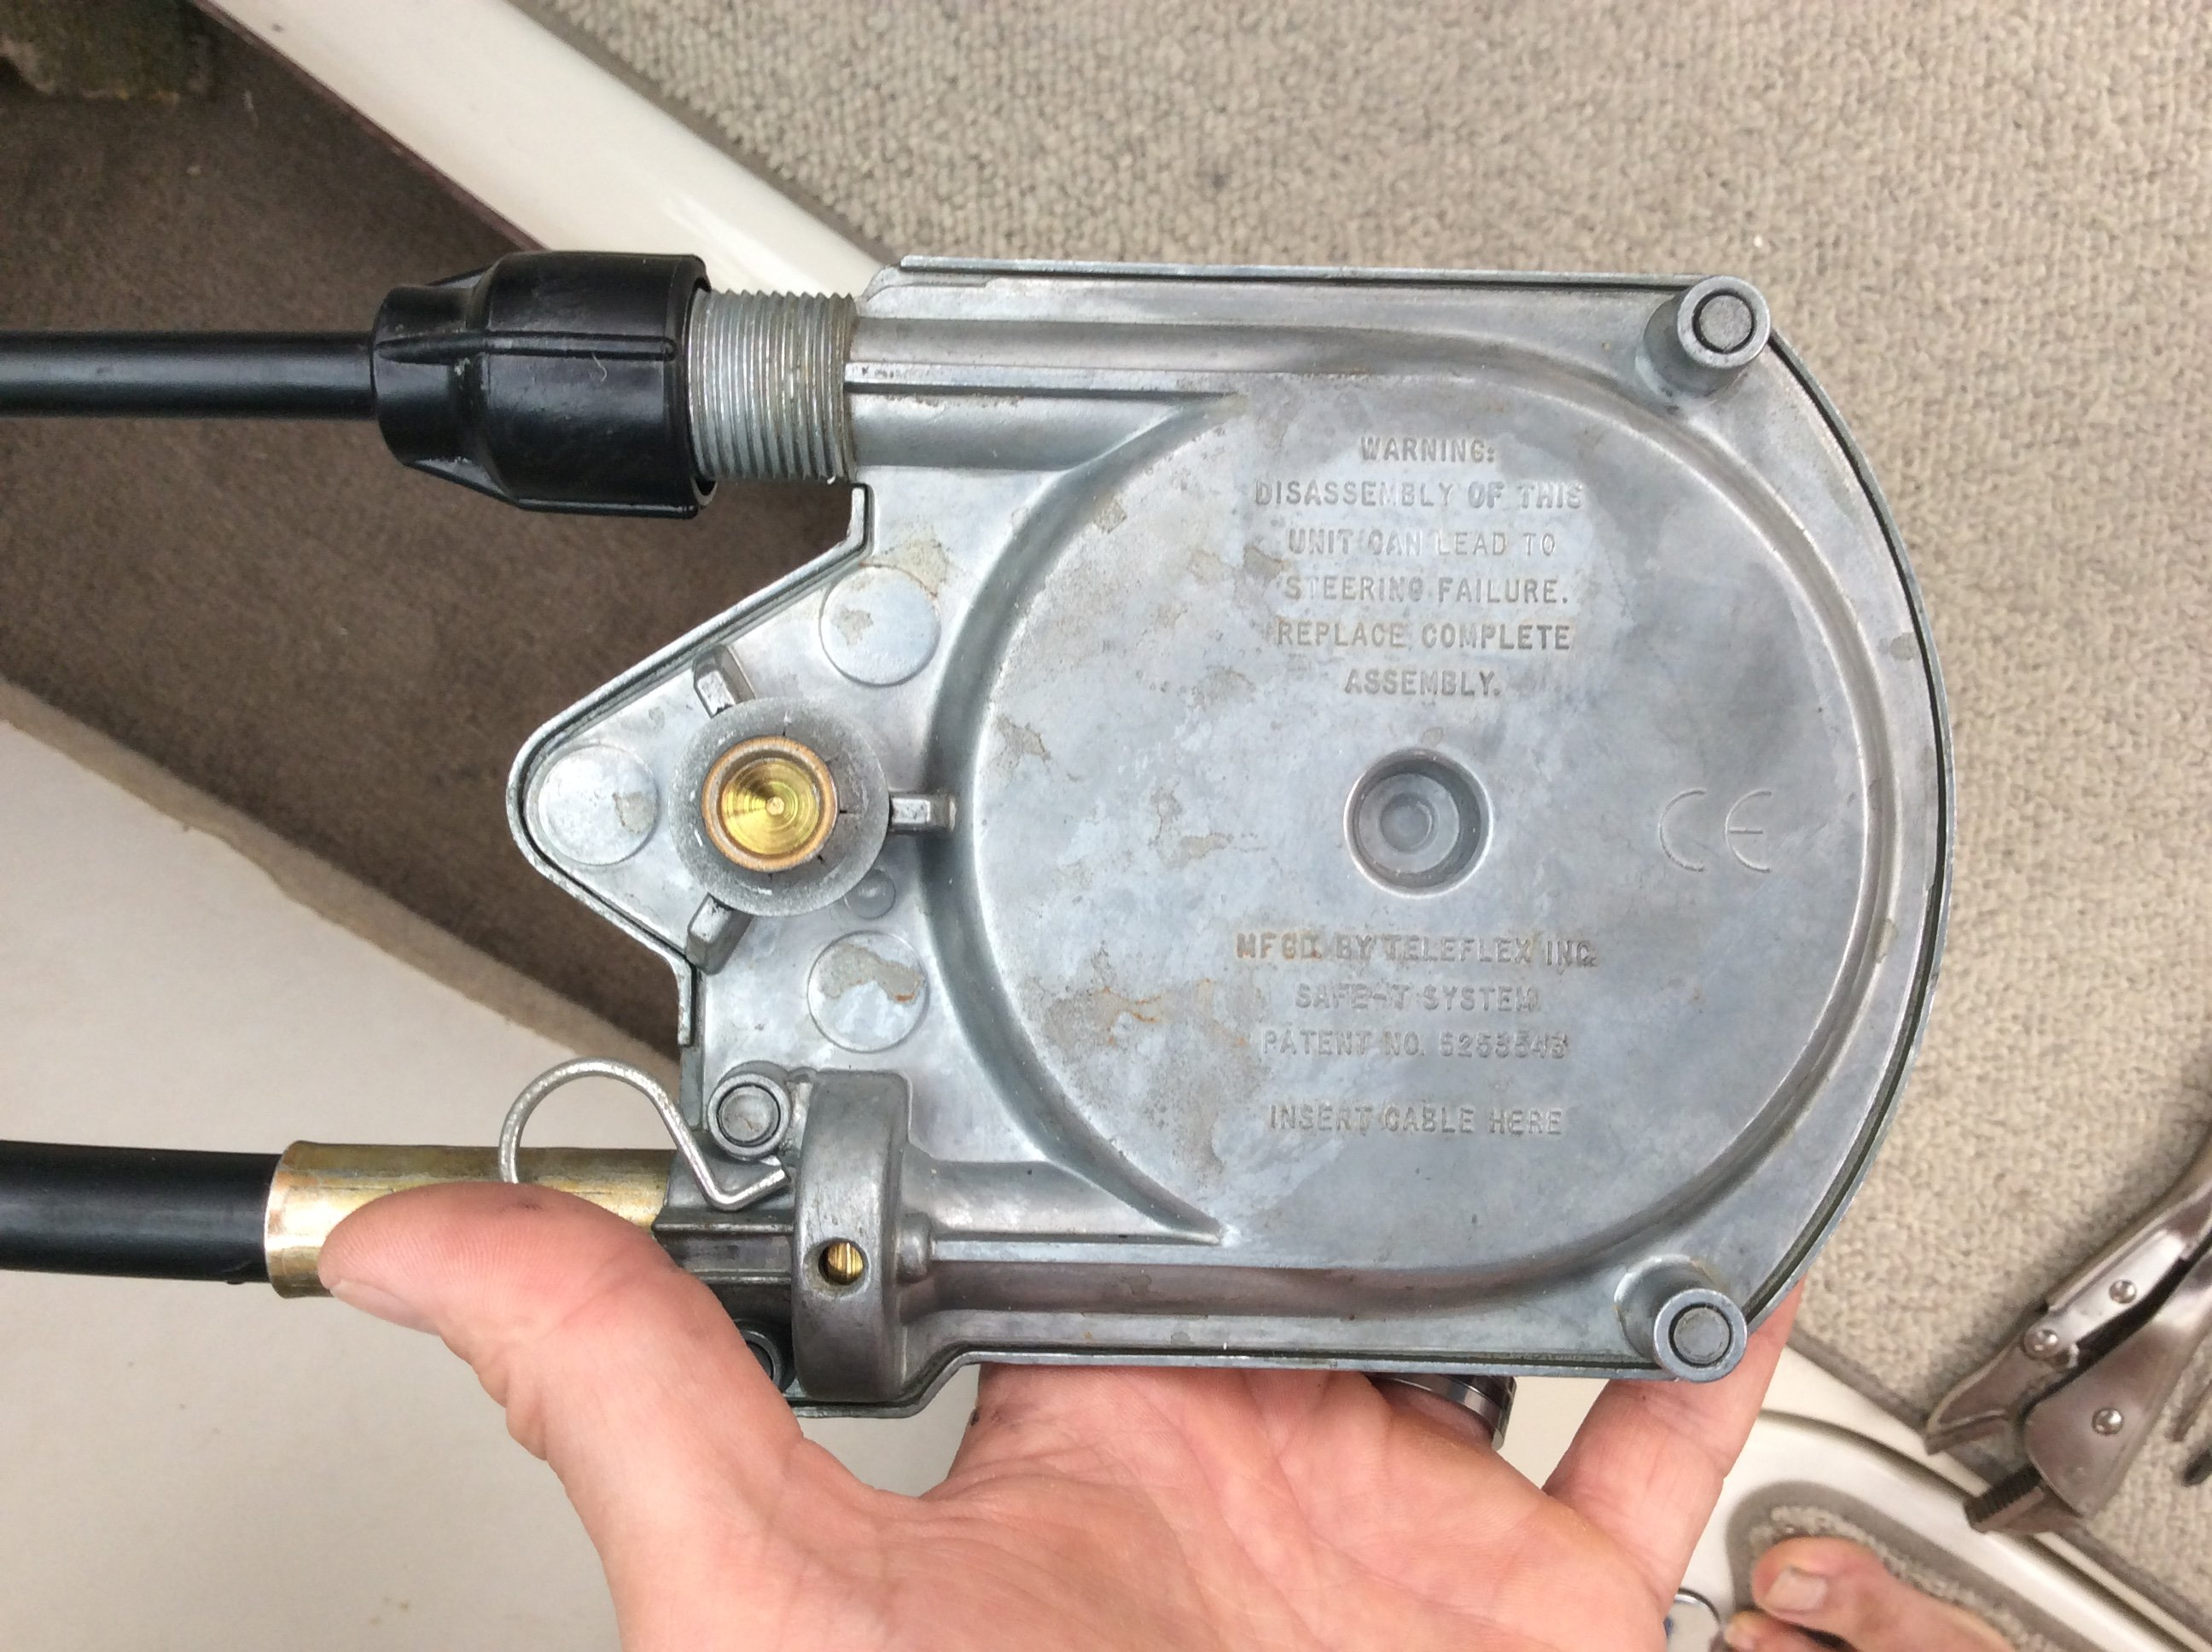 How Do You Disconnect The Teleflex Cable From The Volvo